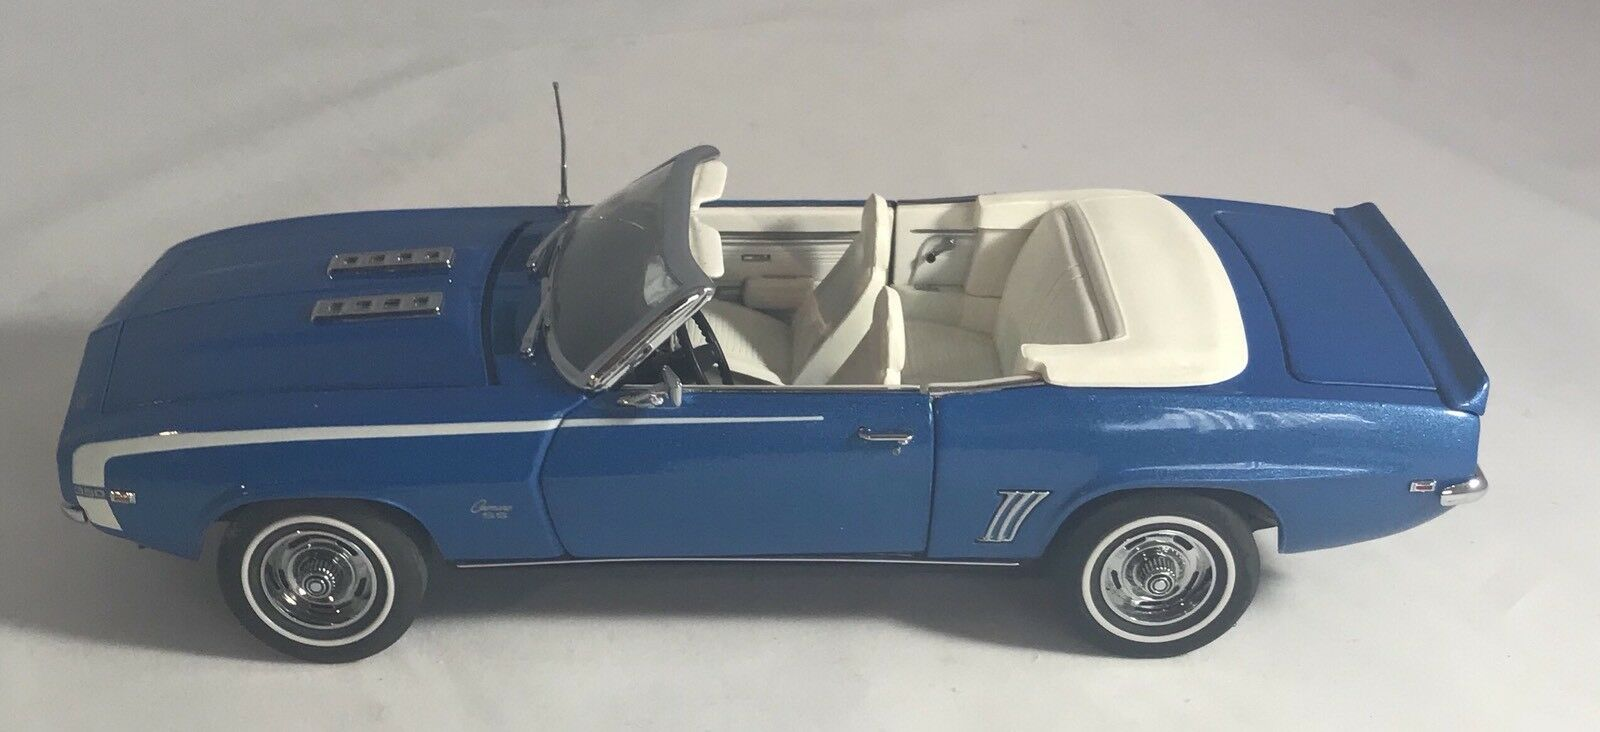 1969 Chevrolet Camaro By Danbury Mint 1:24 DM517